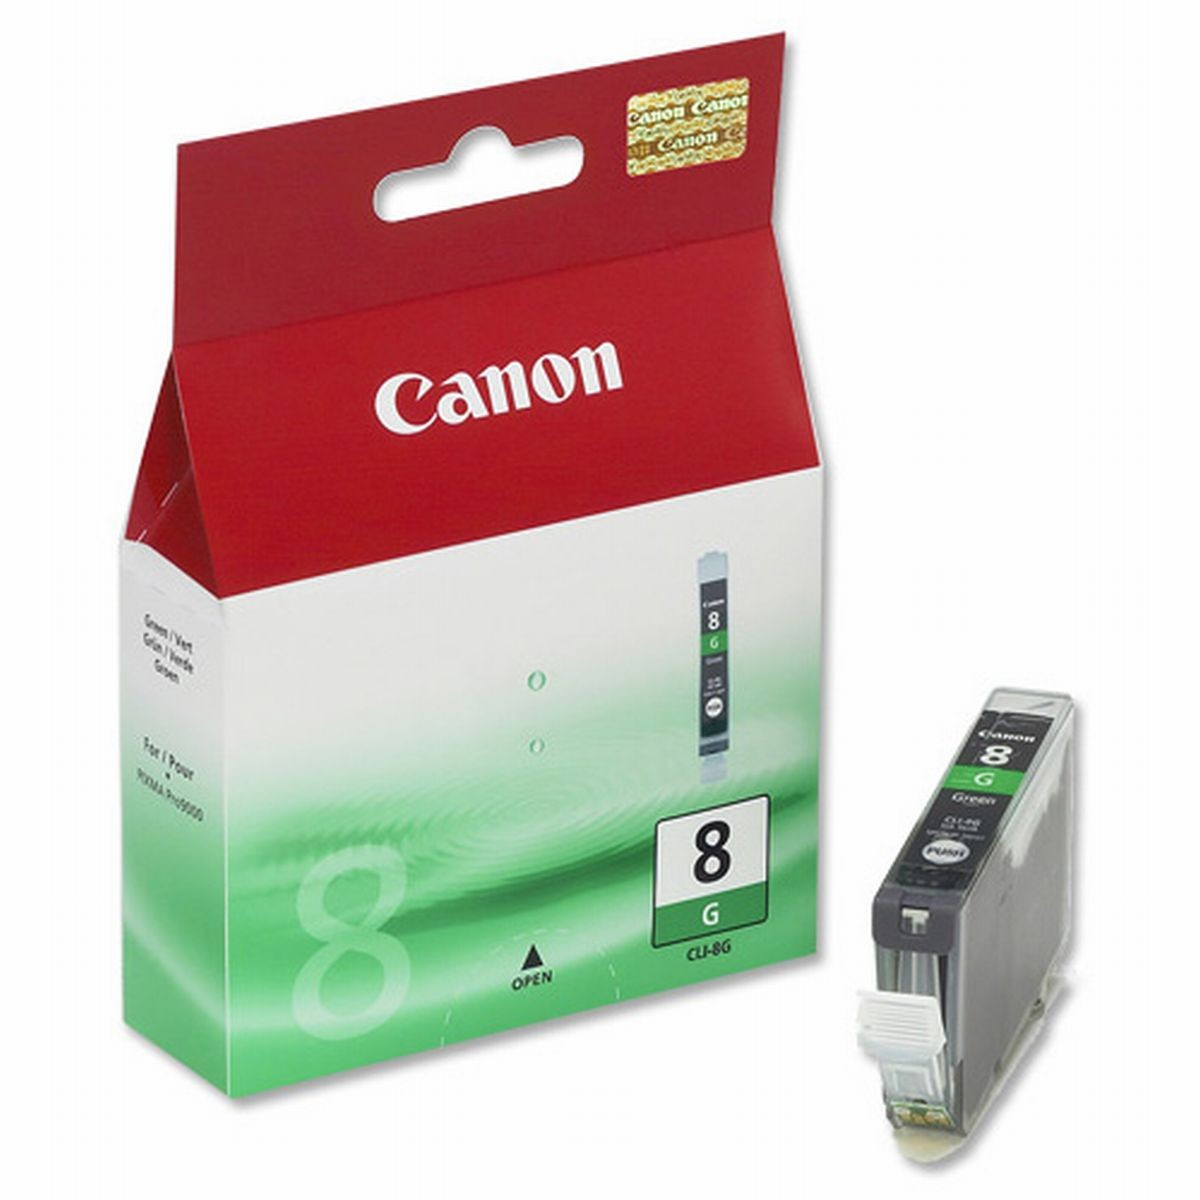 canon CLi-8G Green - for pixma Pro9000